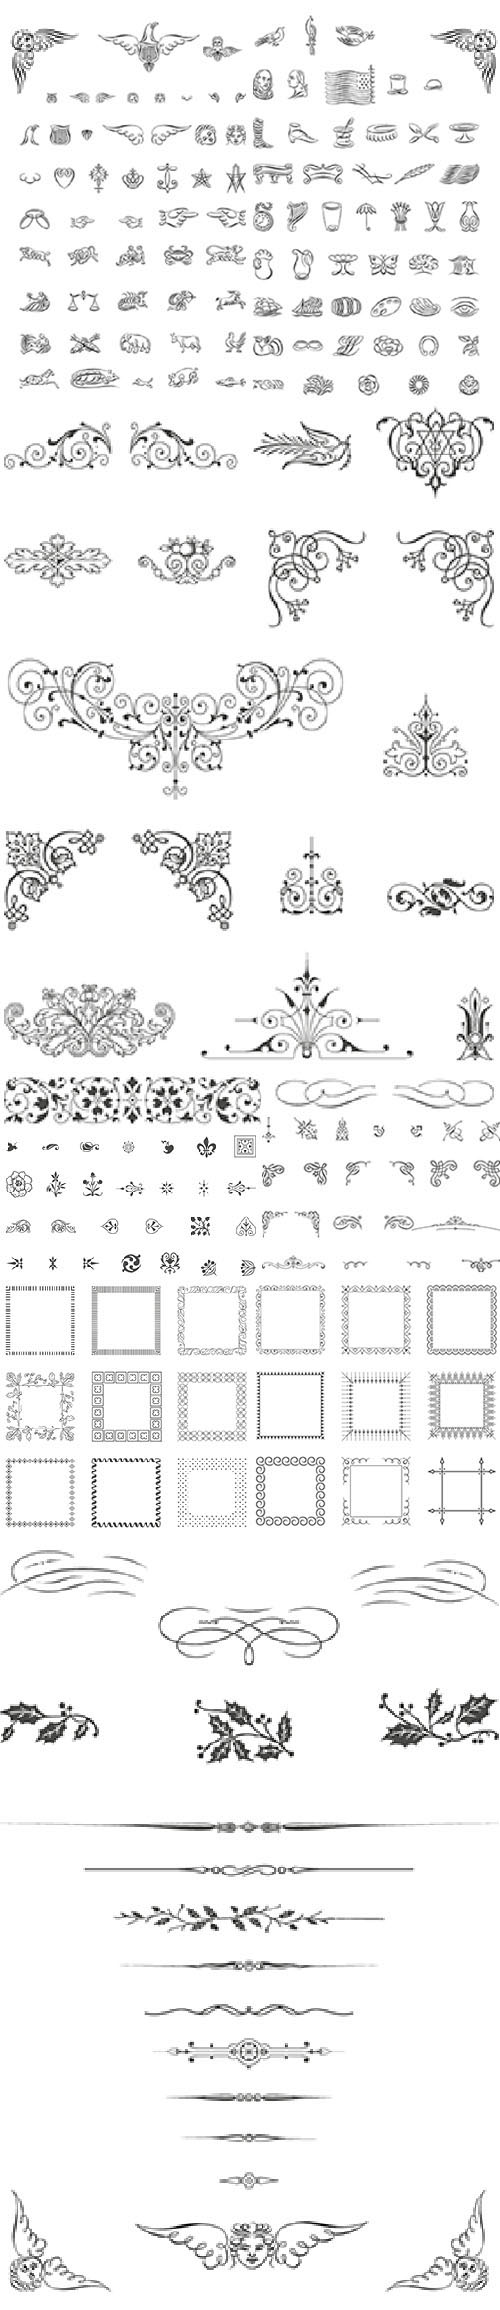 Vintage Calligraphic Ornaments Vector Illustrations Bundle